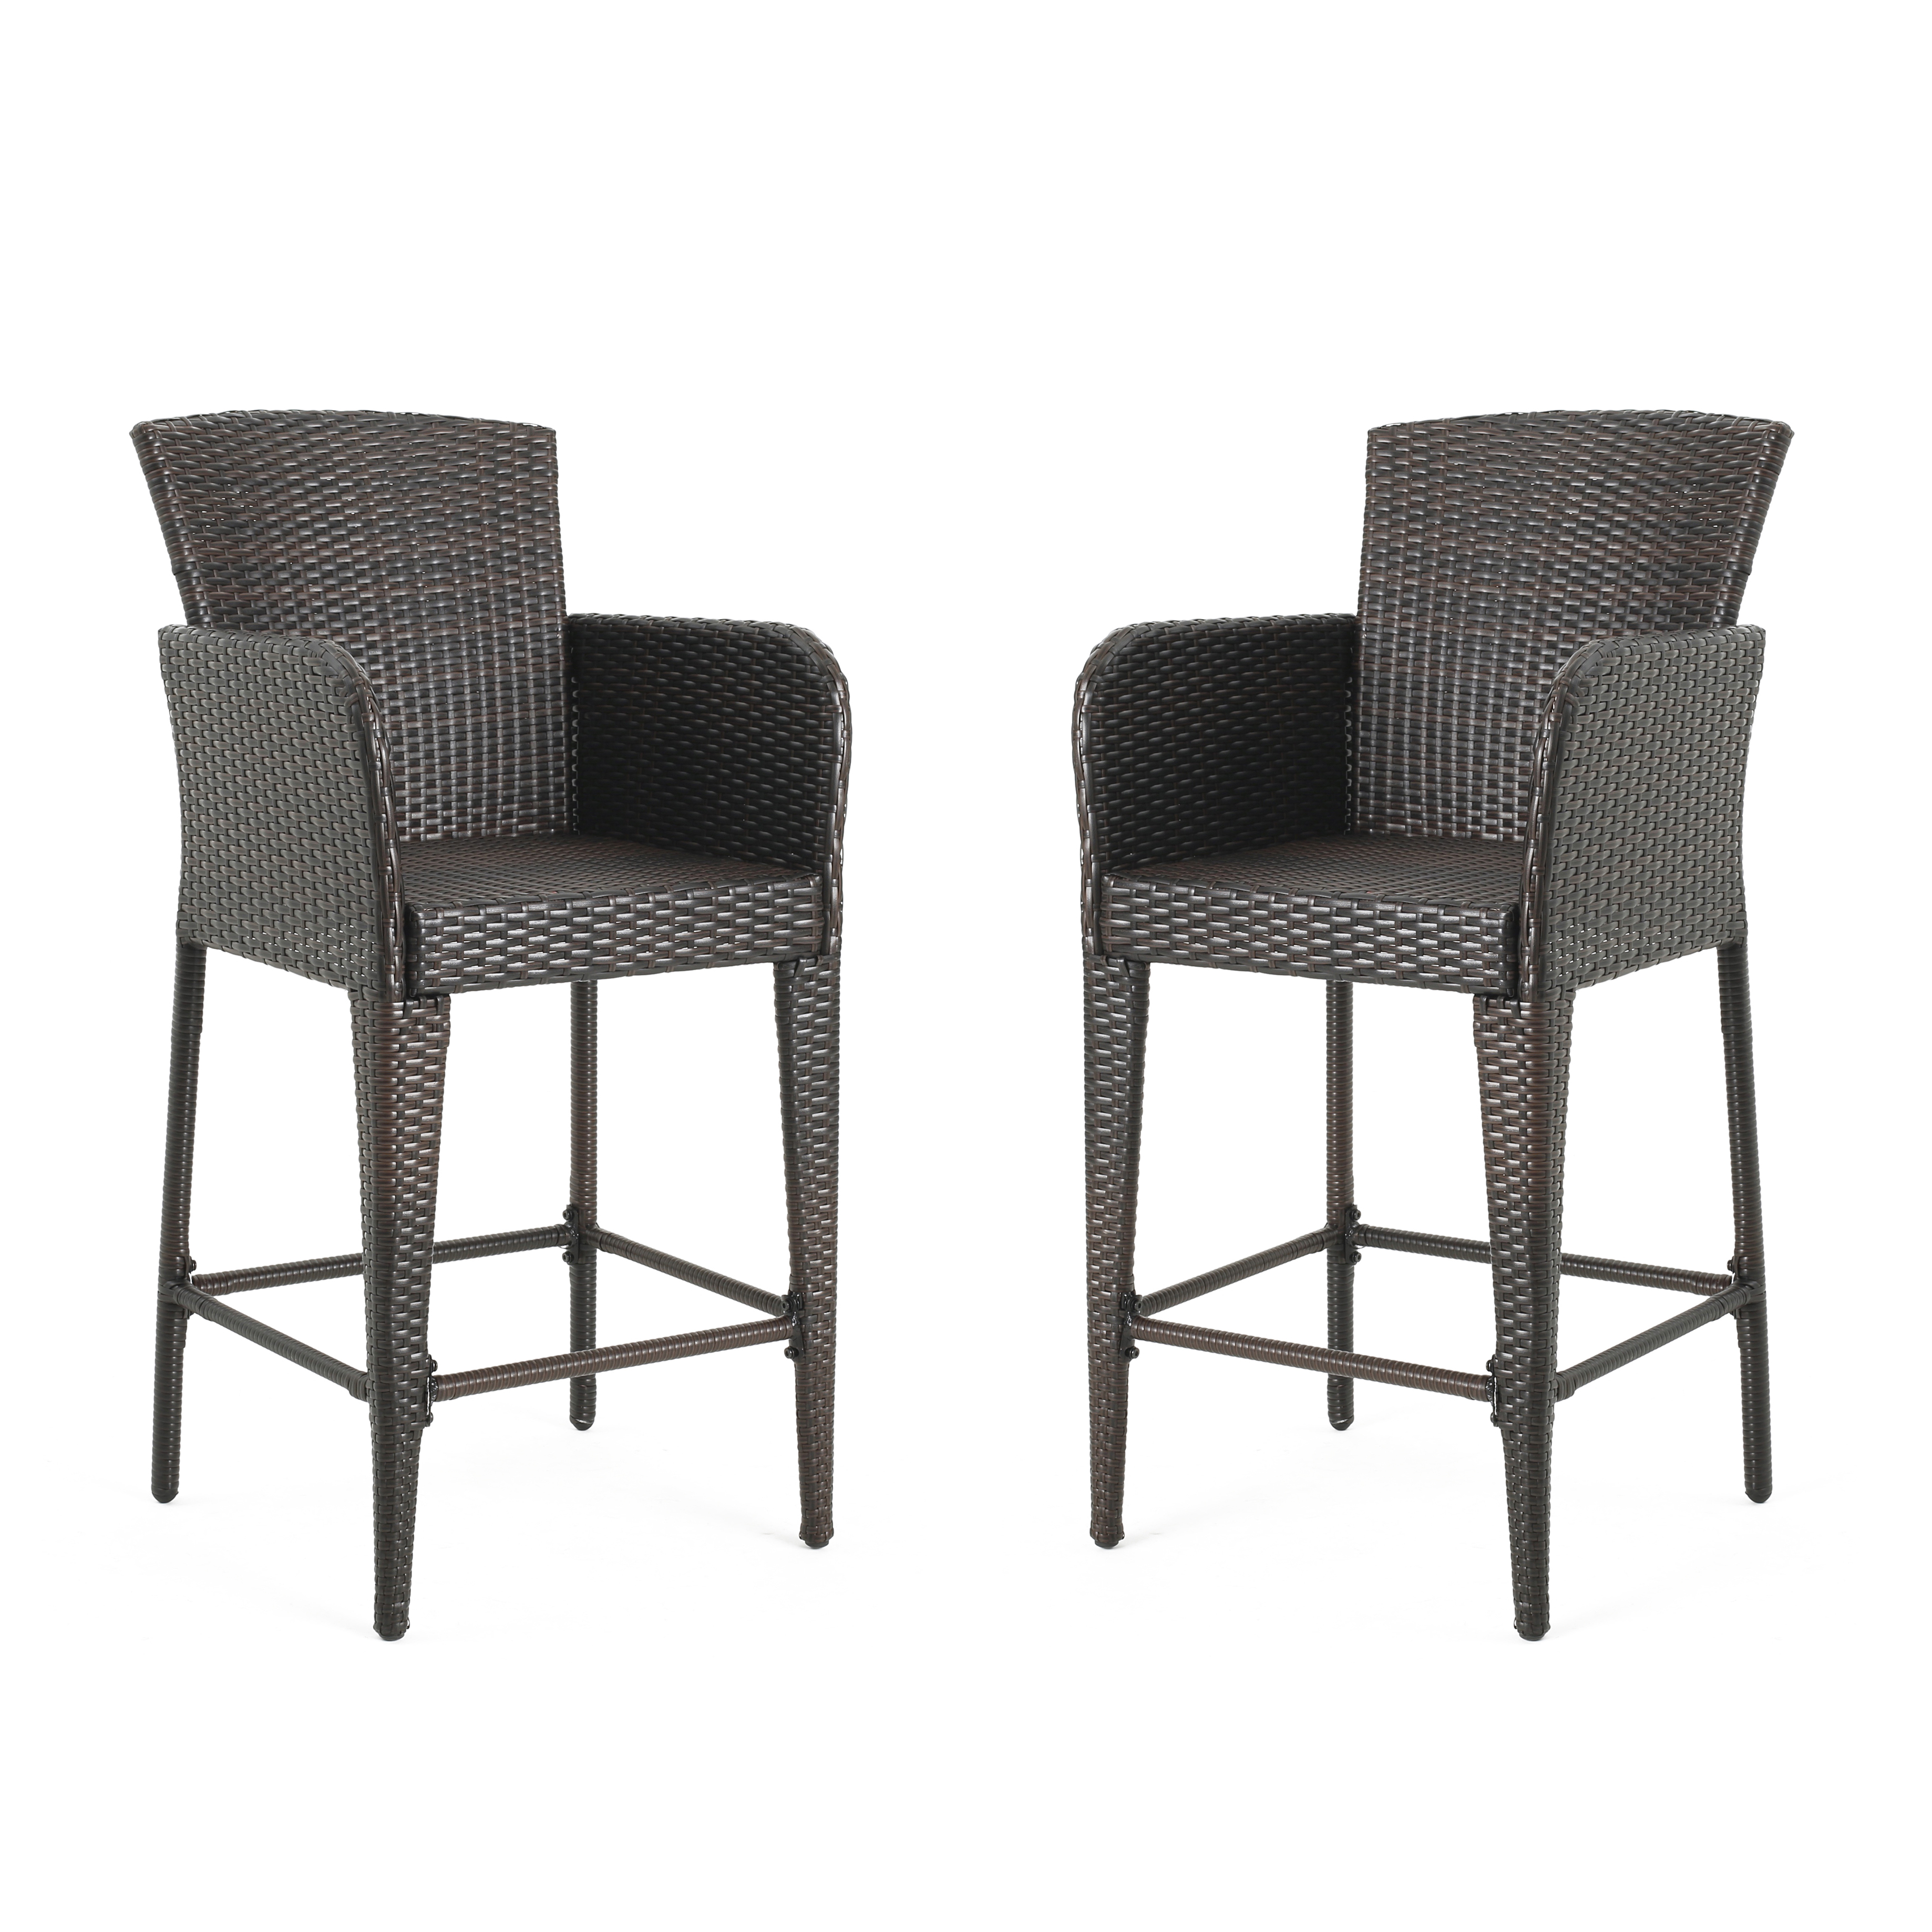 Bari Outdoor Multibrown Wicker Bar Stools, Set of 2